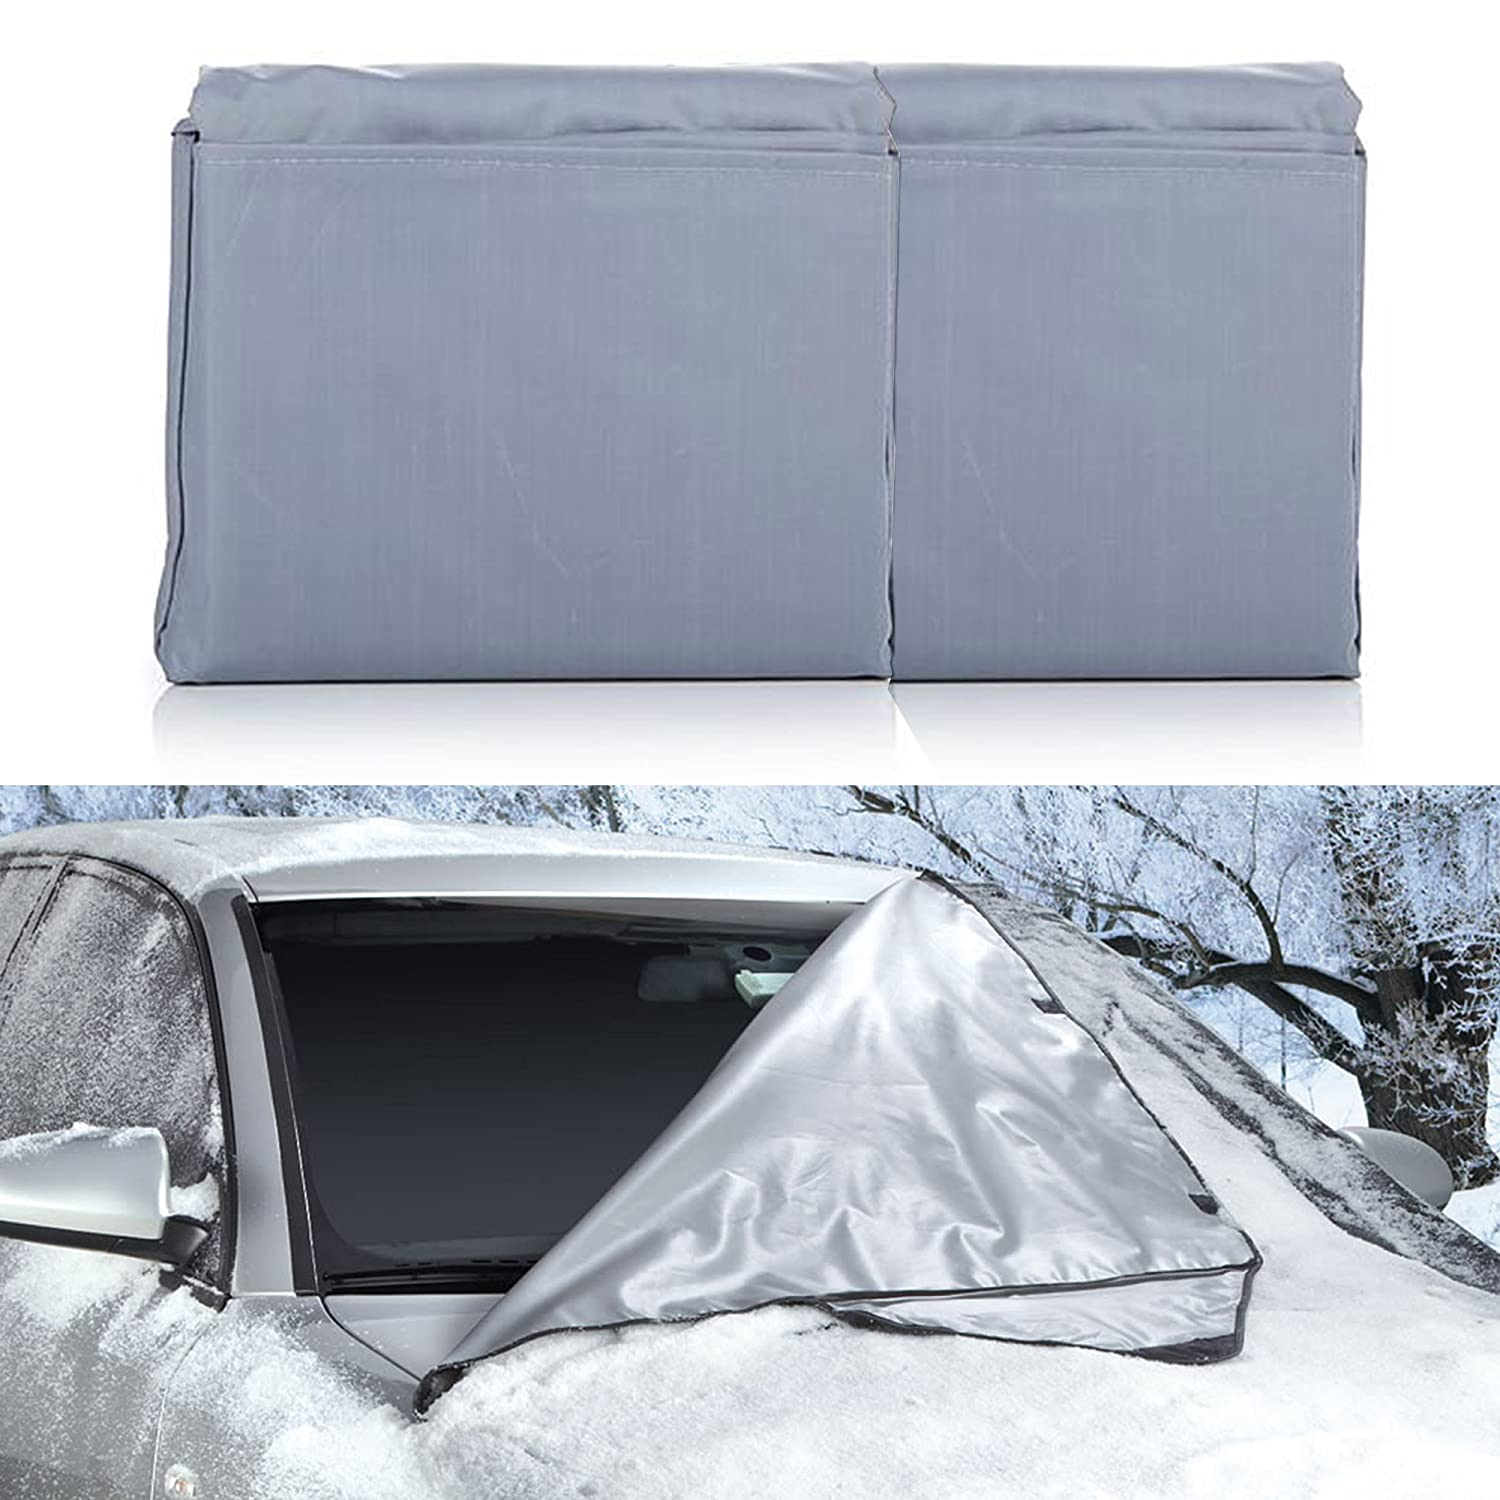 """Weathershield Windshield Wrap - Car Snow Cover (66"""" x 41.5') All Weather Magnetic Wrap With Anti Theft Flaps - For Sedan / SUV / Truck - Auto Protection For Ice, Frost, Leaves & Sun - 1 Pack Vereker Inc."""